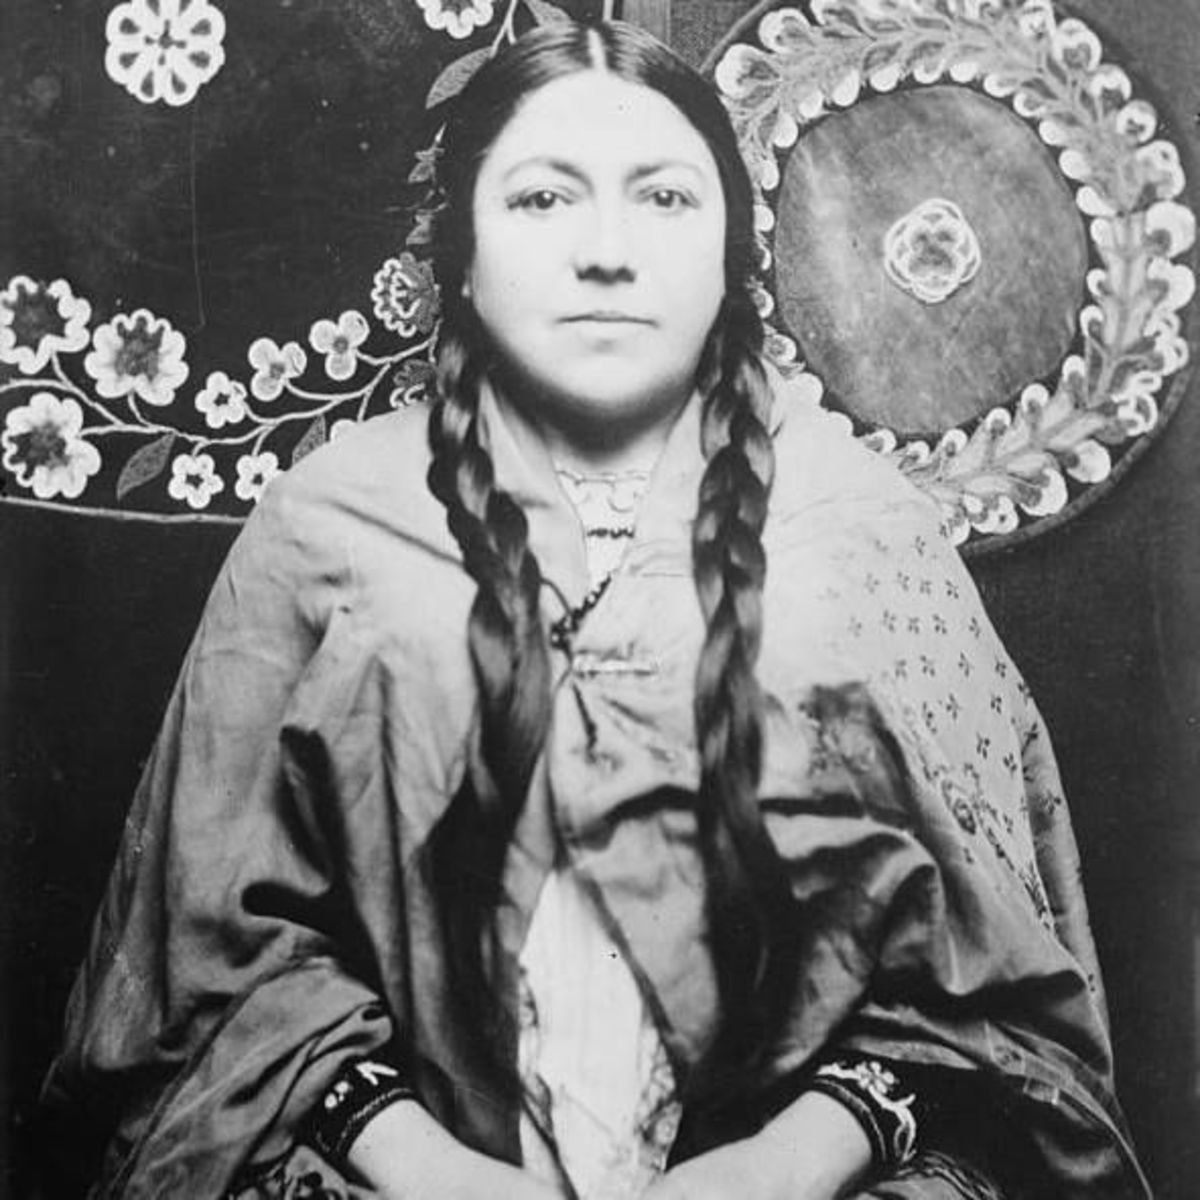 Marie Louise Bottineau Baldwin was Ojibwa from the Turtle Mountain reservation, and the first woman of color to graduate from the Washington School of Law.